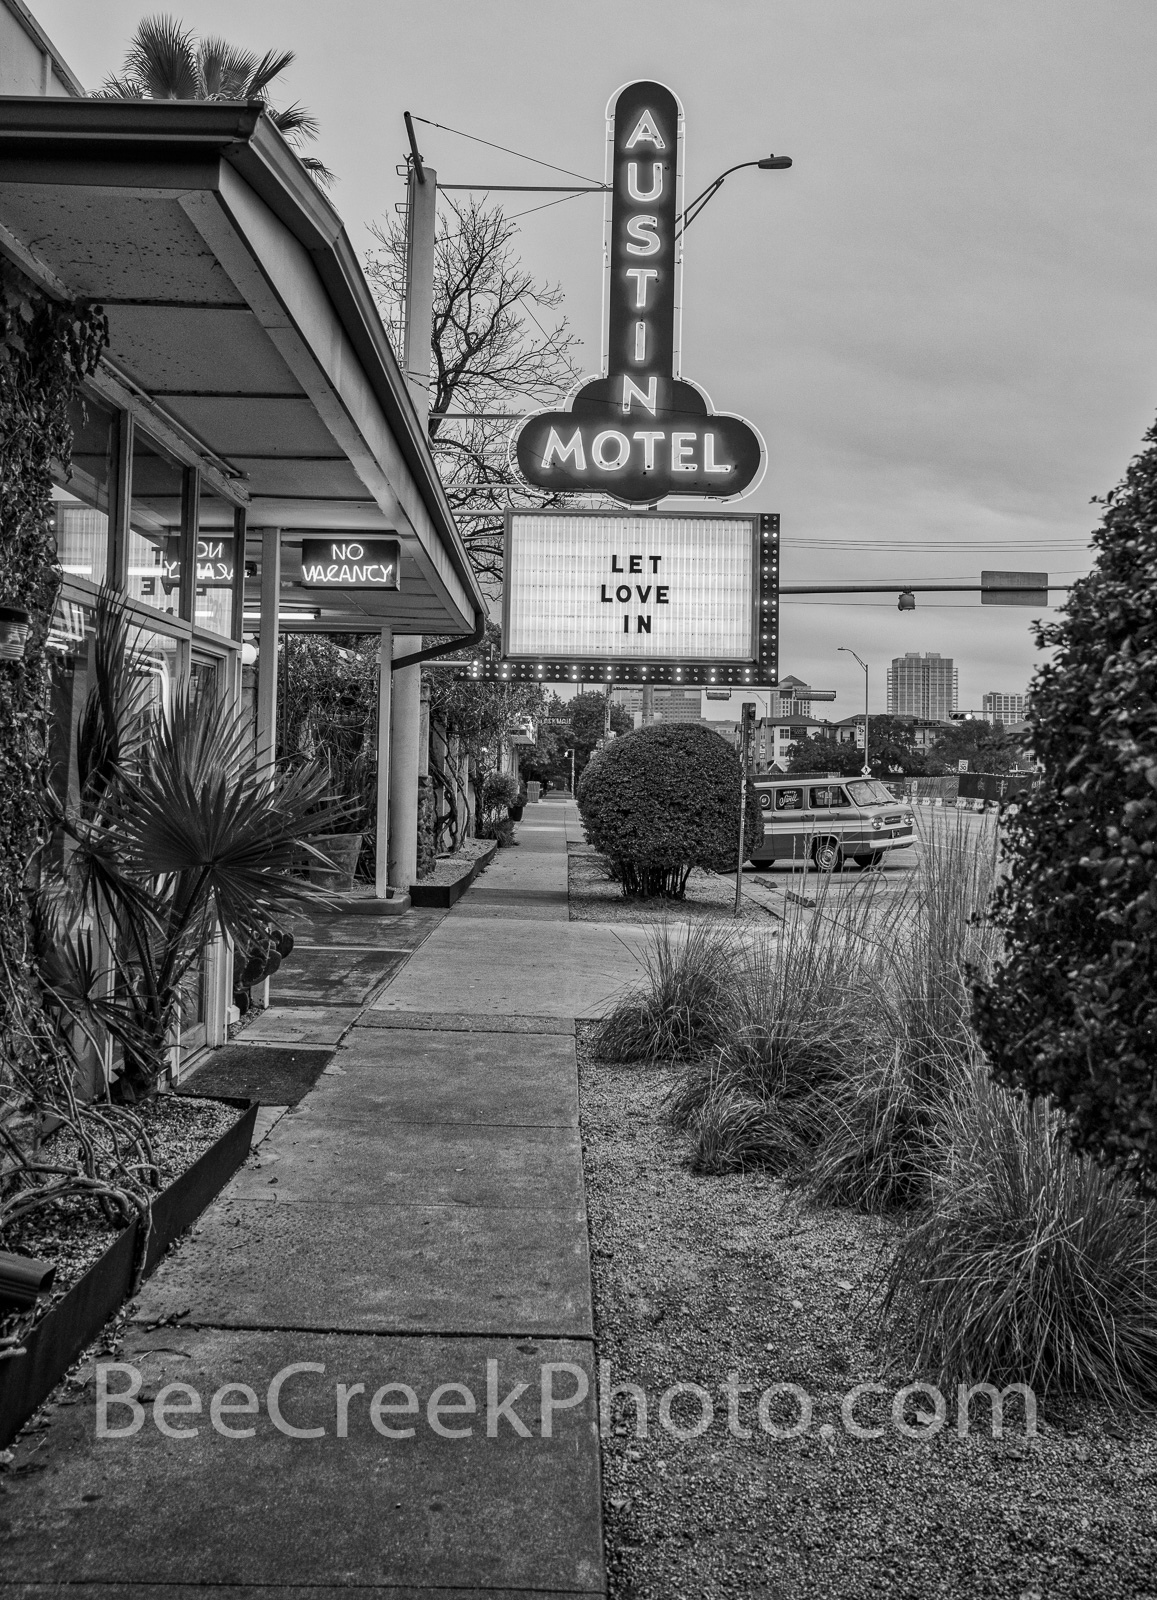 soco, south congress, austin, texas, austin texas, austin downtown, black and white, bw, b w, tourist, austin hotel, sign, austin motel, austin texas, veritcal, , photo